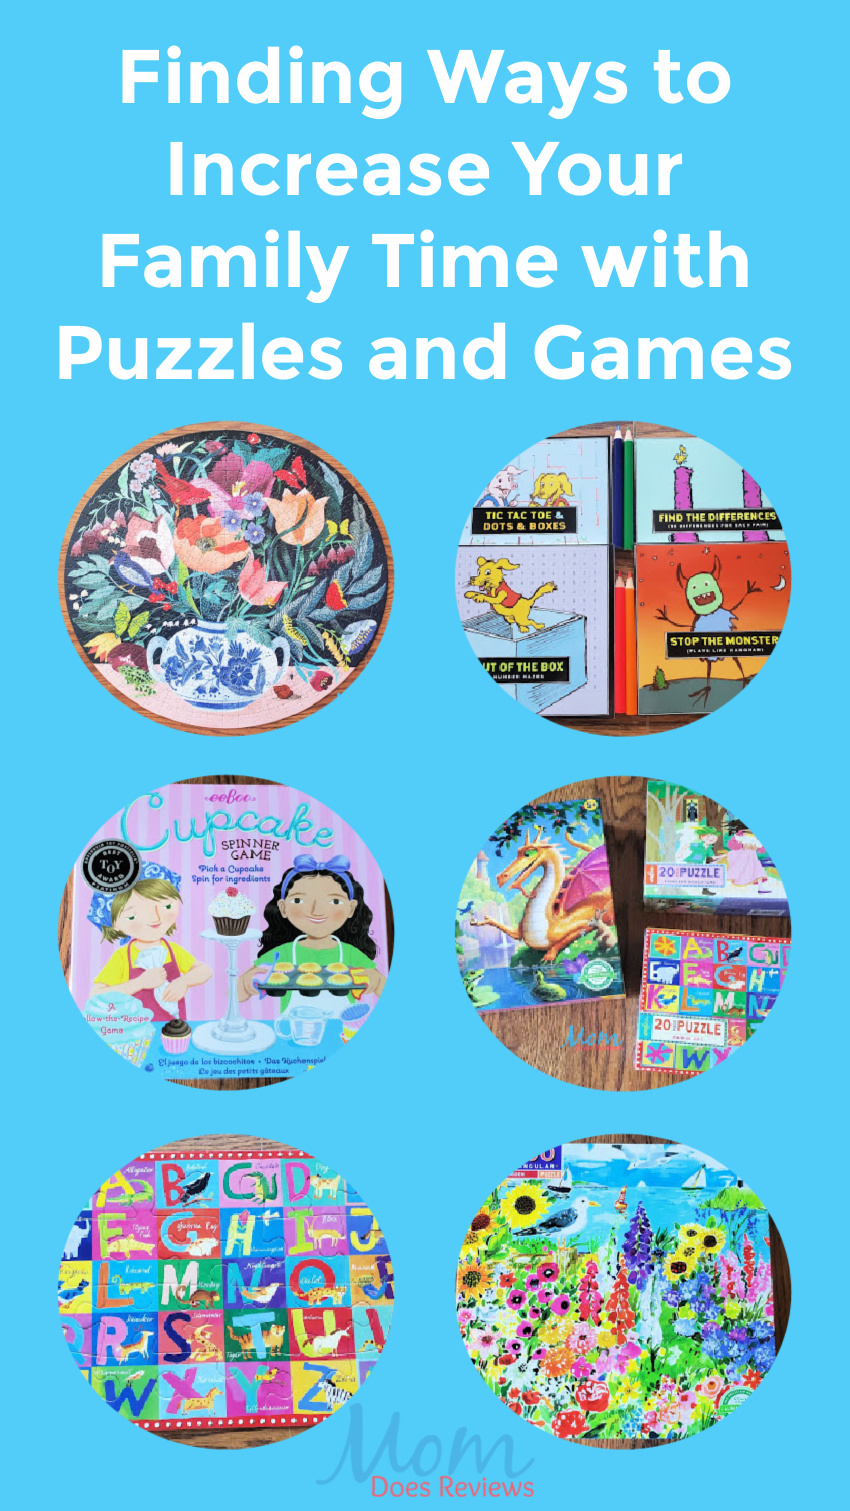 Finding Ways to Increase Your Family Time with Puzzles and Games